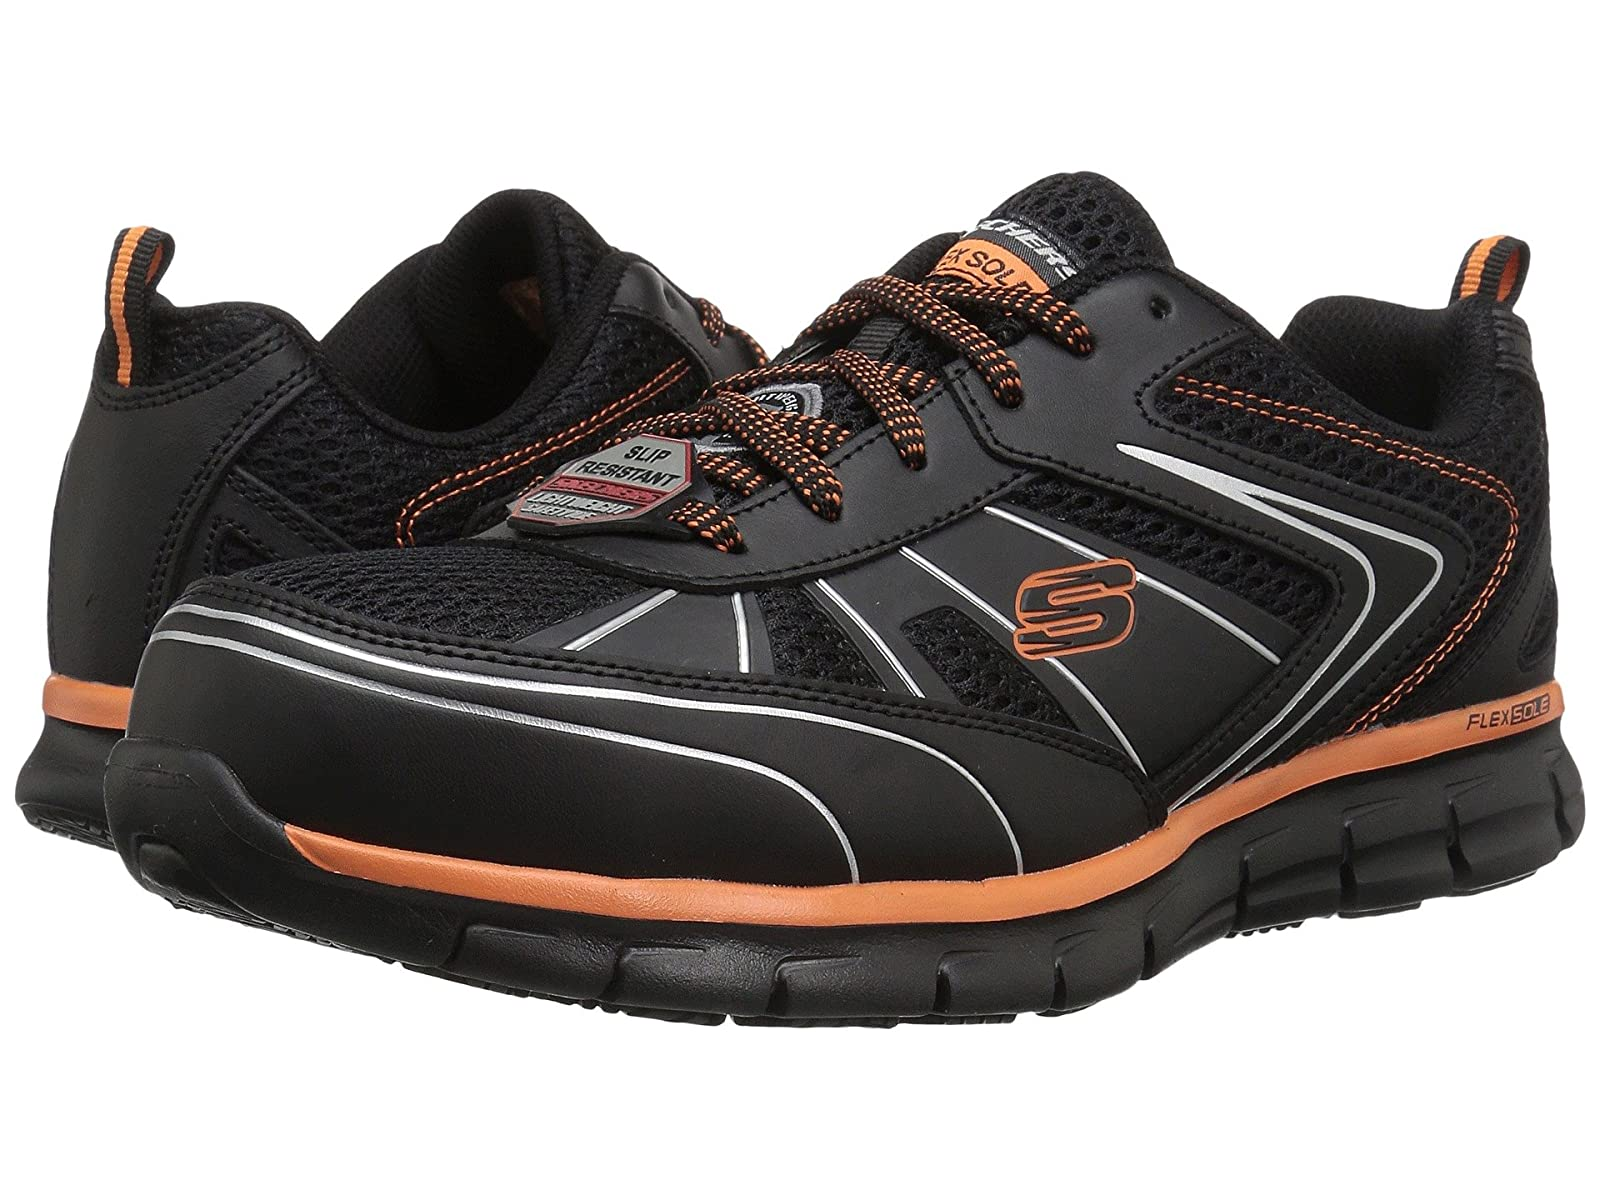 SKECHERS Work Synergy - FosstonCheap and distinctive eye-catching shoes